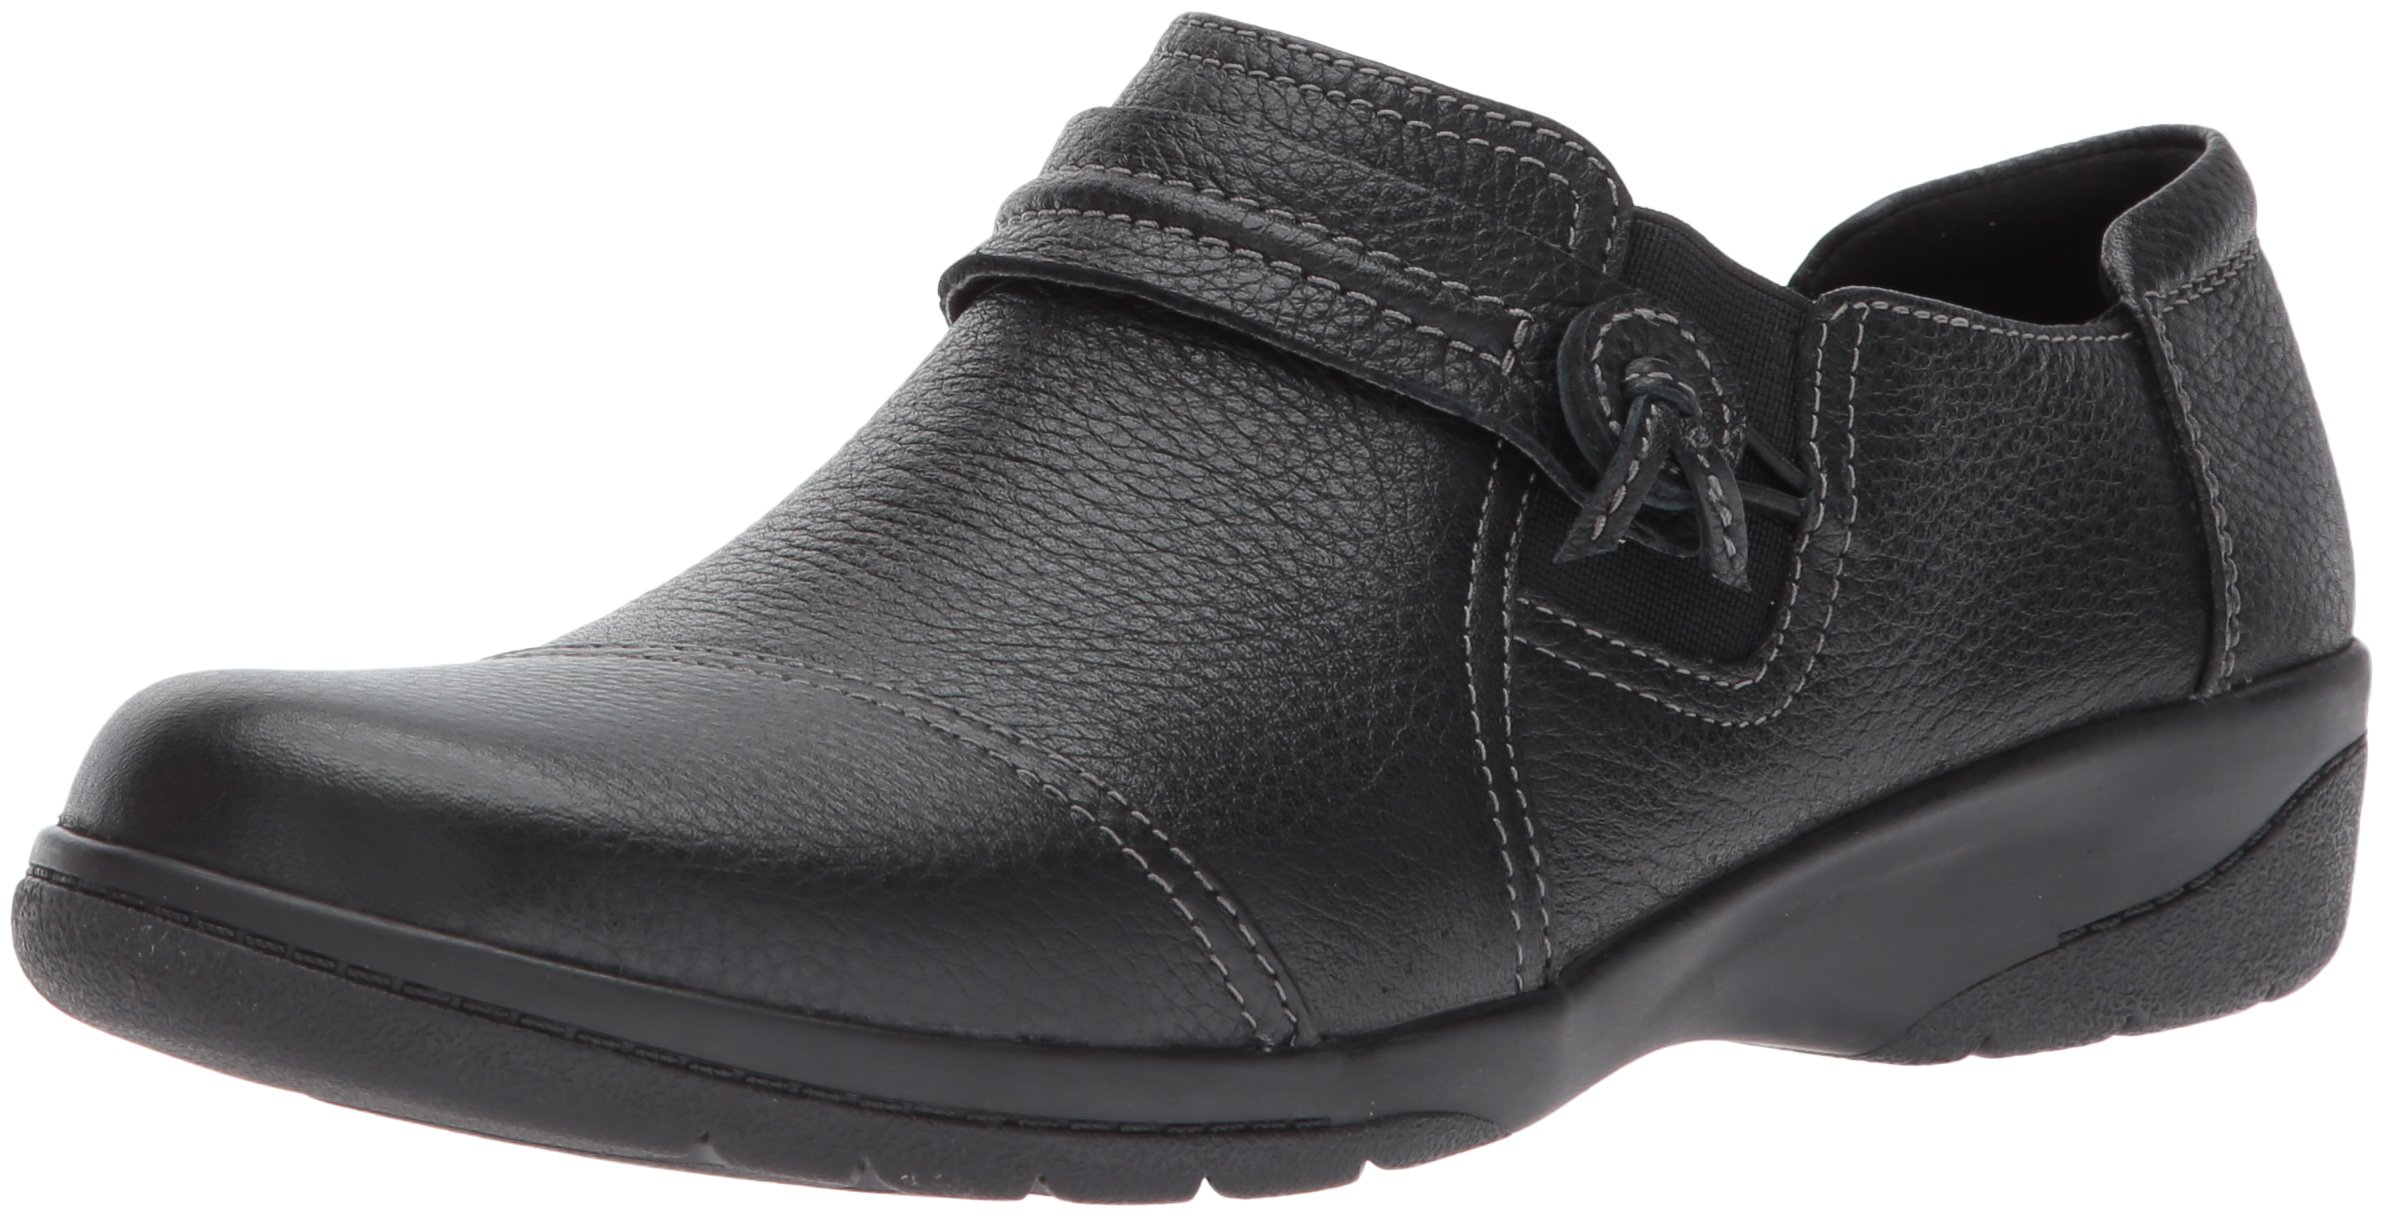 CLARKS Women's Cheyn Madi Loafer, Black Tumbled Leather, 10 W US by CLARKS